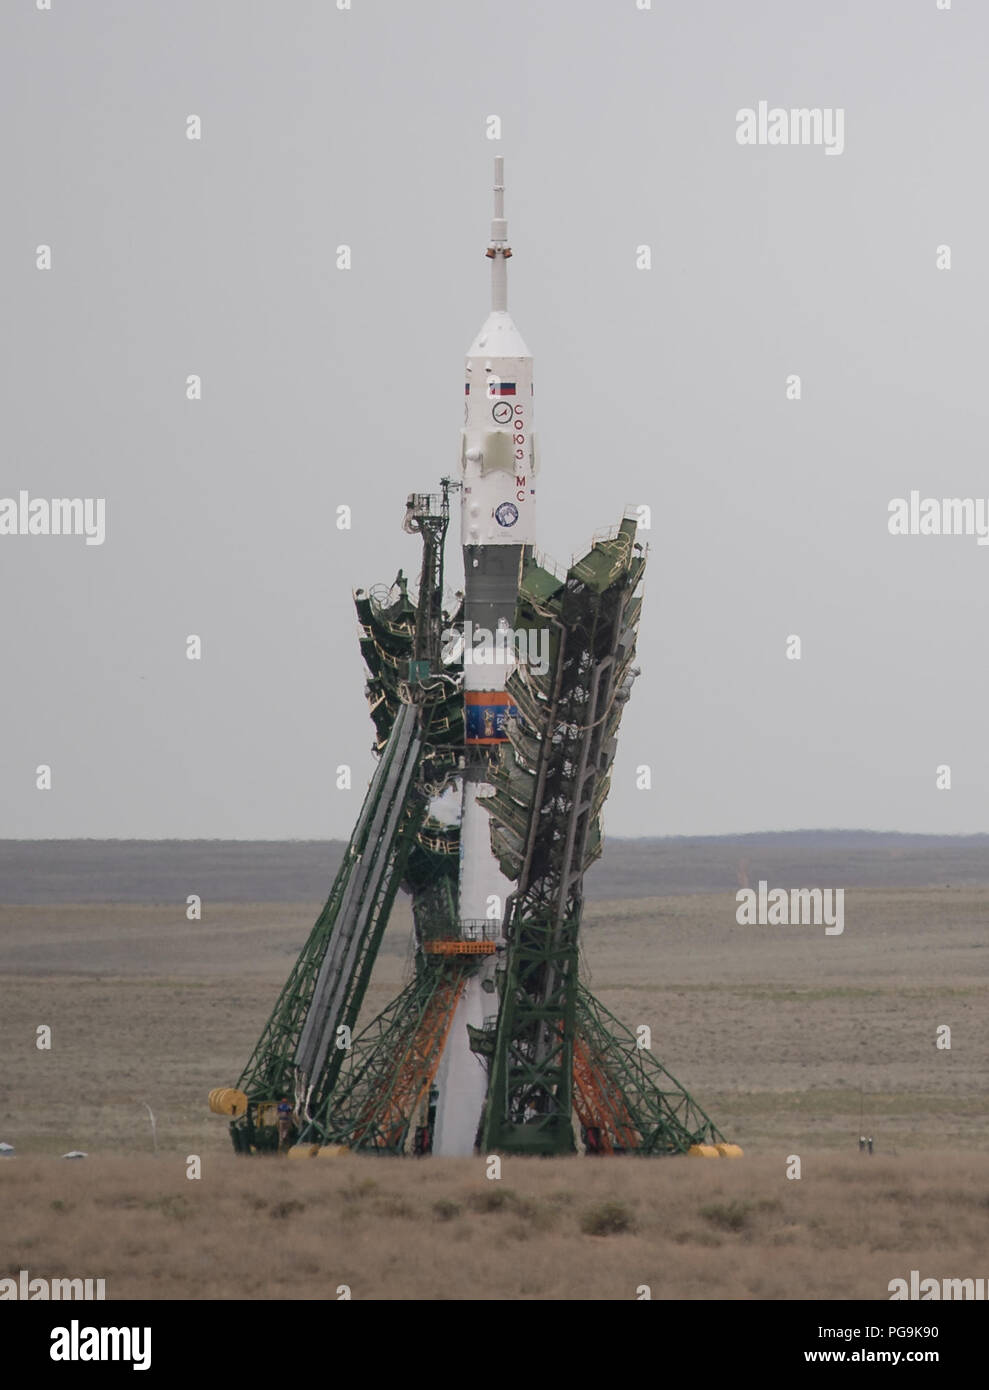 The Soyuz MS-09 rocket is seen as the gantry arms are lowered prior to launch, Wednesday, June 6, 2018 at the Baikonur Cosmodrome in Kazakhstan. Expedition 56 Soyuz Commander Sergey Prokopyev of Roscosmos, flight engineer Serena Auñón-Chancellor of NASA, and flight engineer Alexander Gerst of ESA (European Space Agency) will spend the next six months living and working aboard the International Space Station. - Stock Image